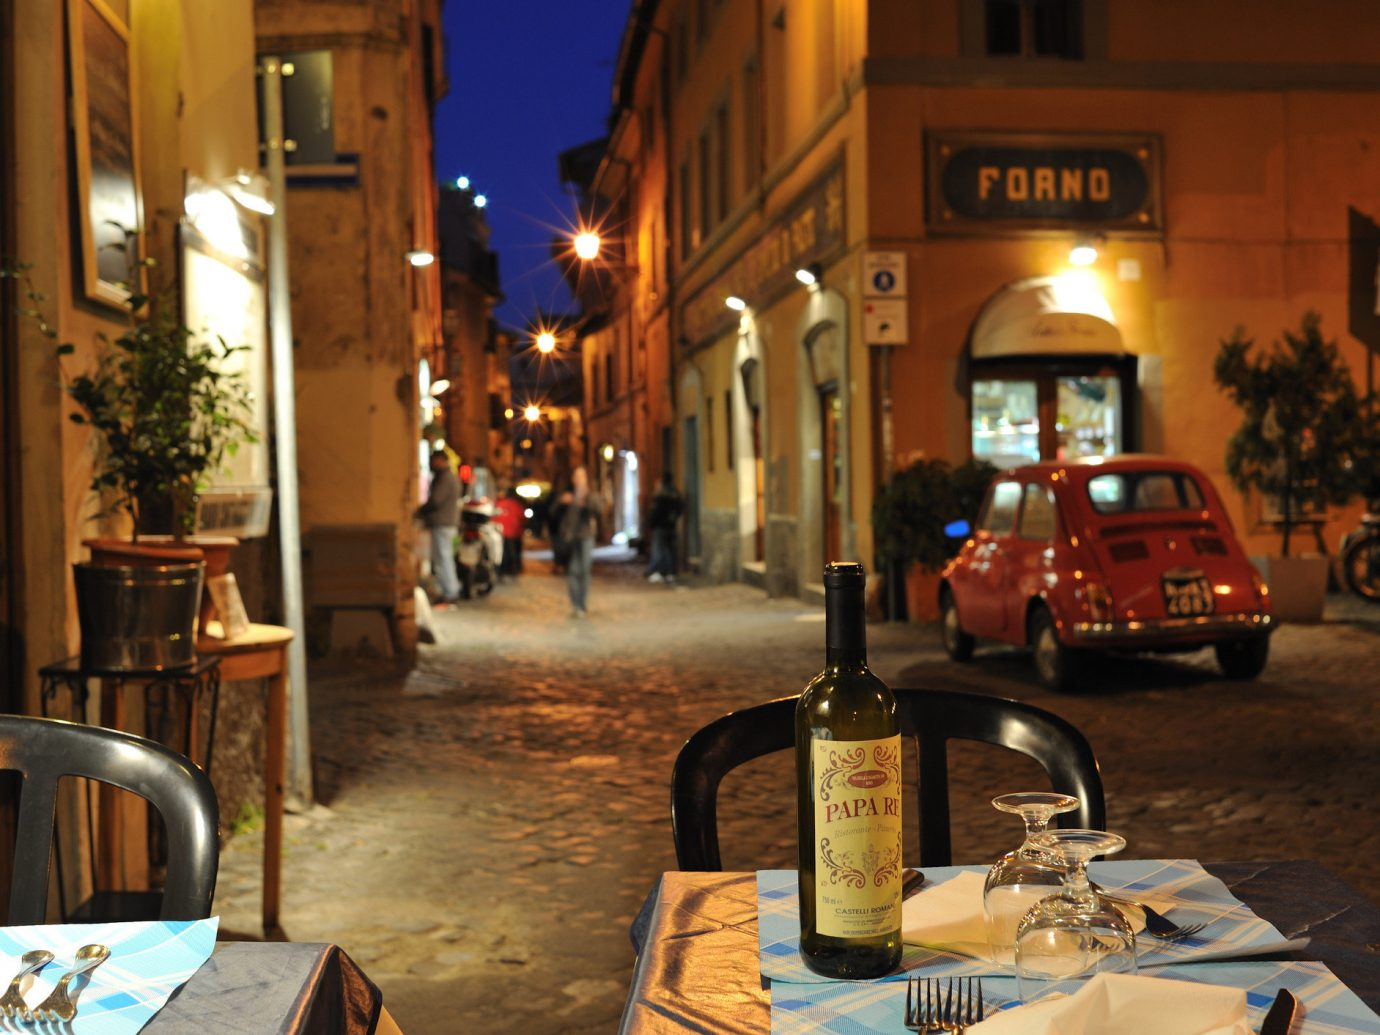 Travel Tips outdoor night street Town restaurant evening City window road